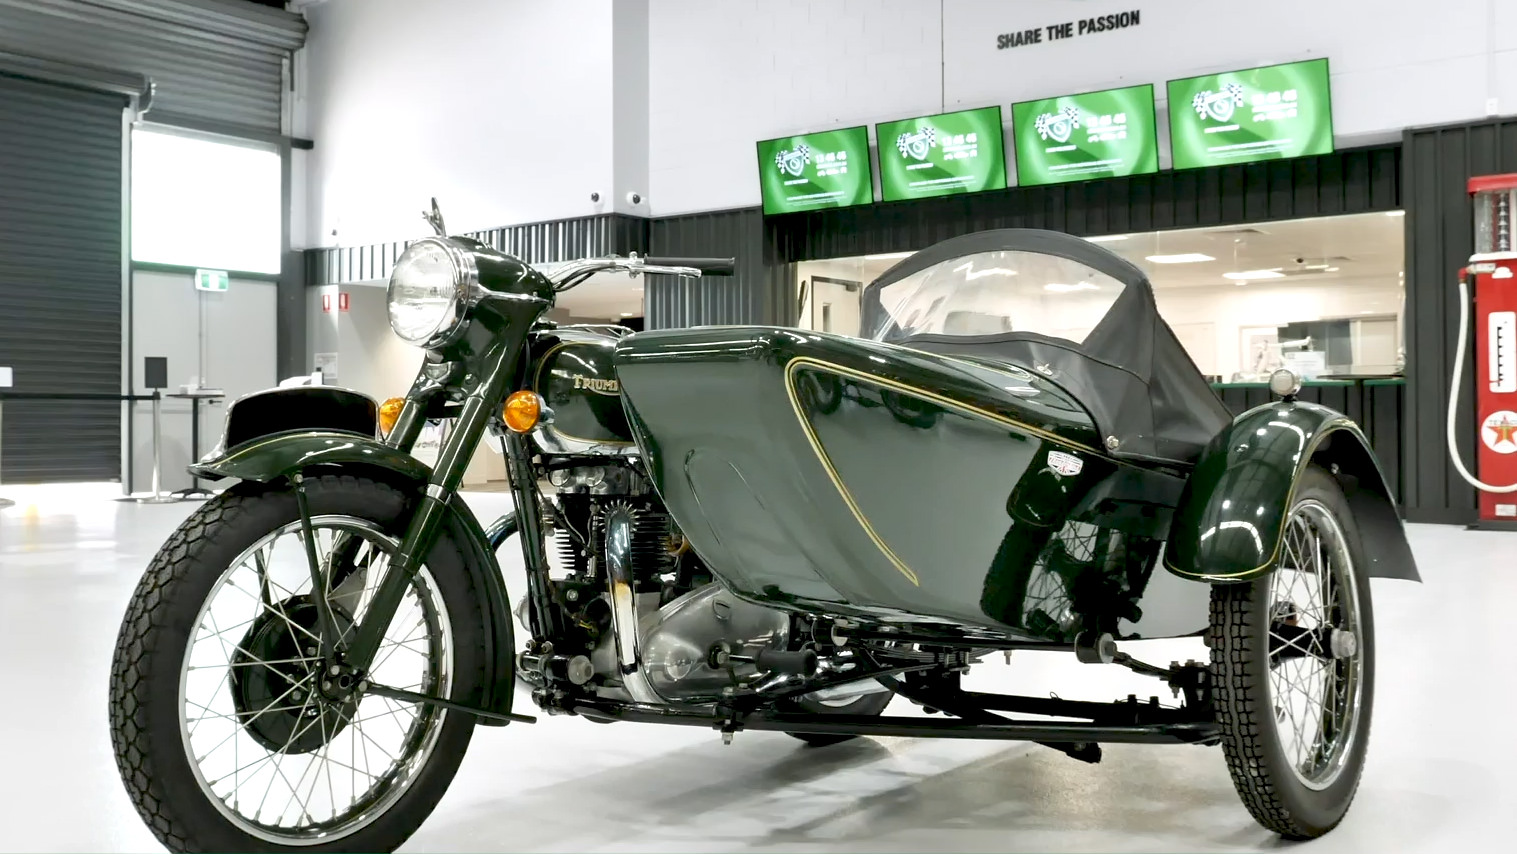 1952 Triumph Thunderbird 650 Motorcycle & Sidecar - 2021 Shannons Summer Timed Online Auction